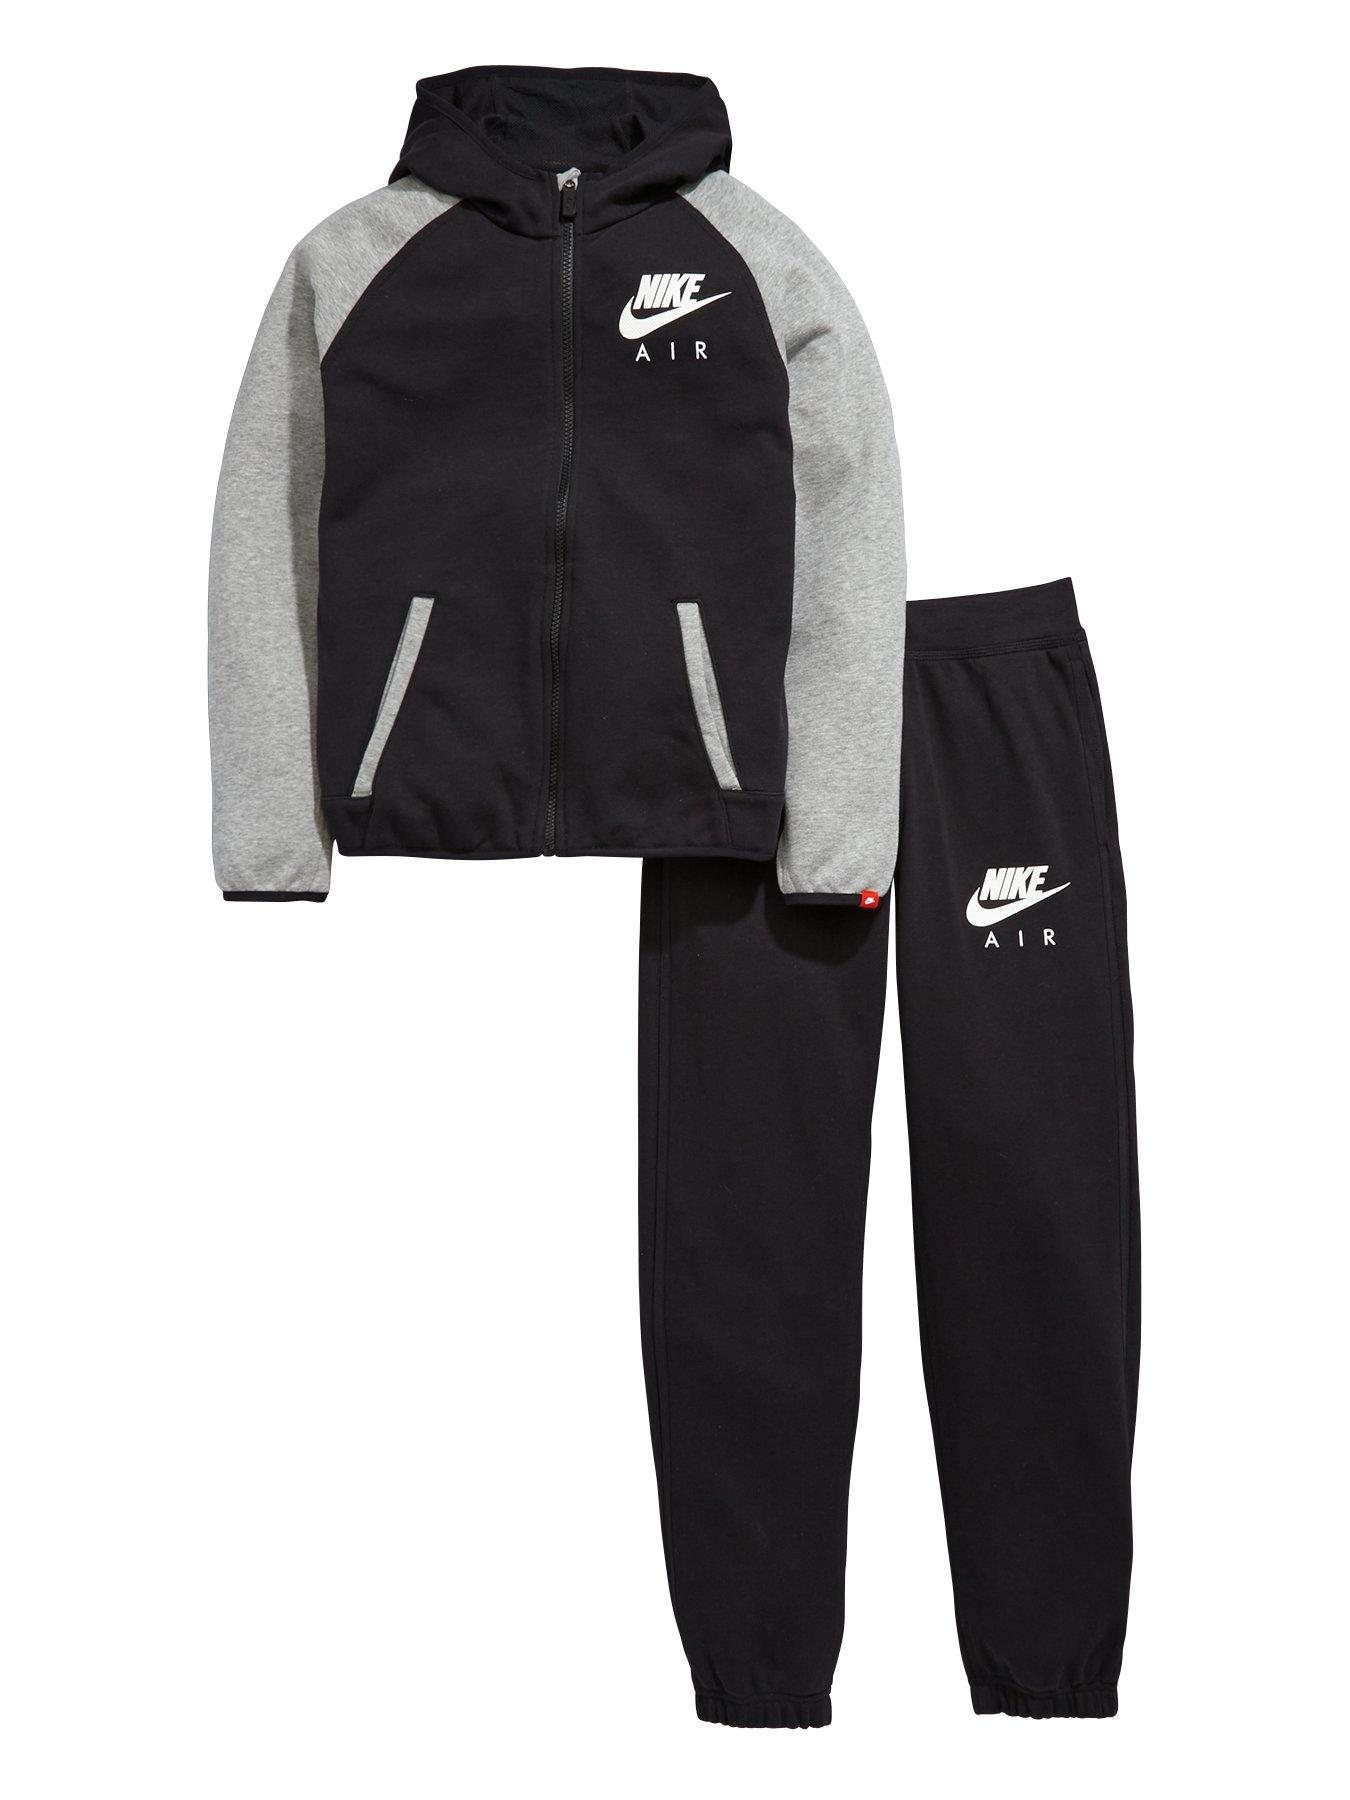 nike air full tracksuit